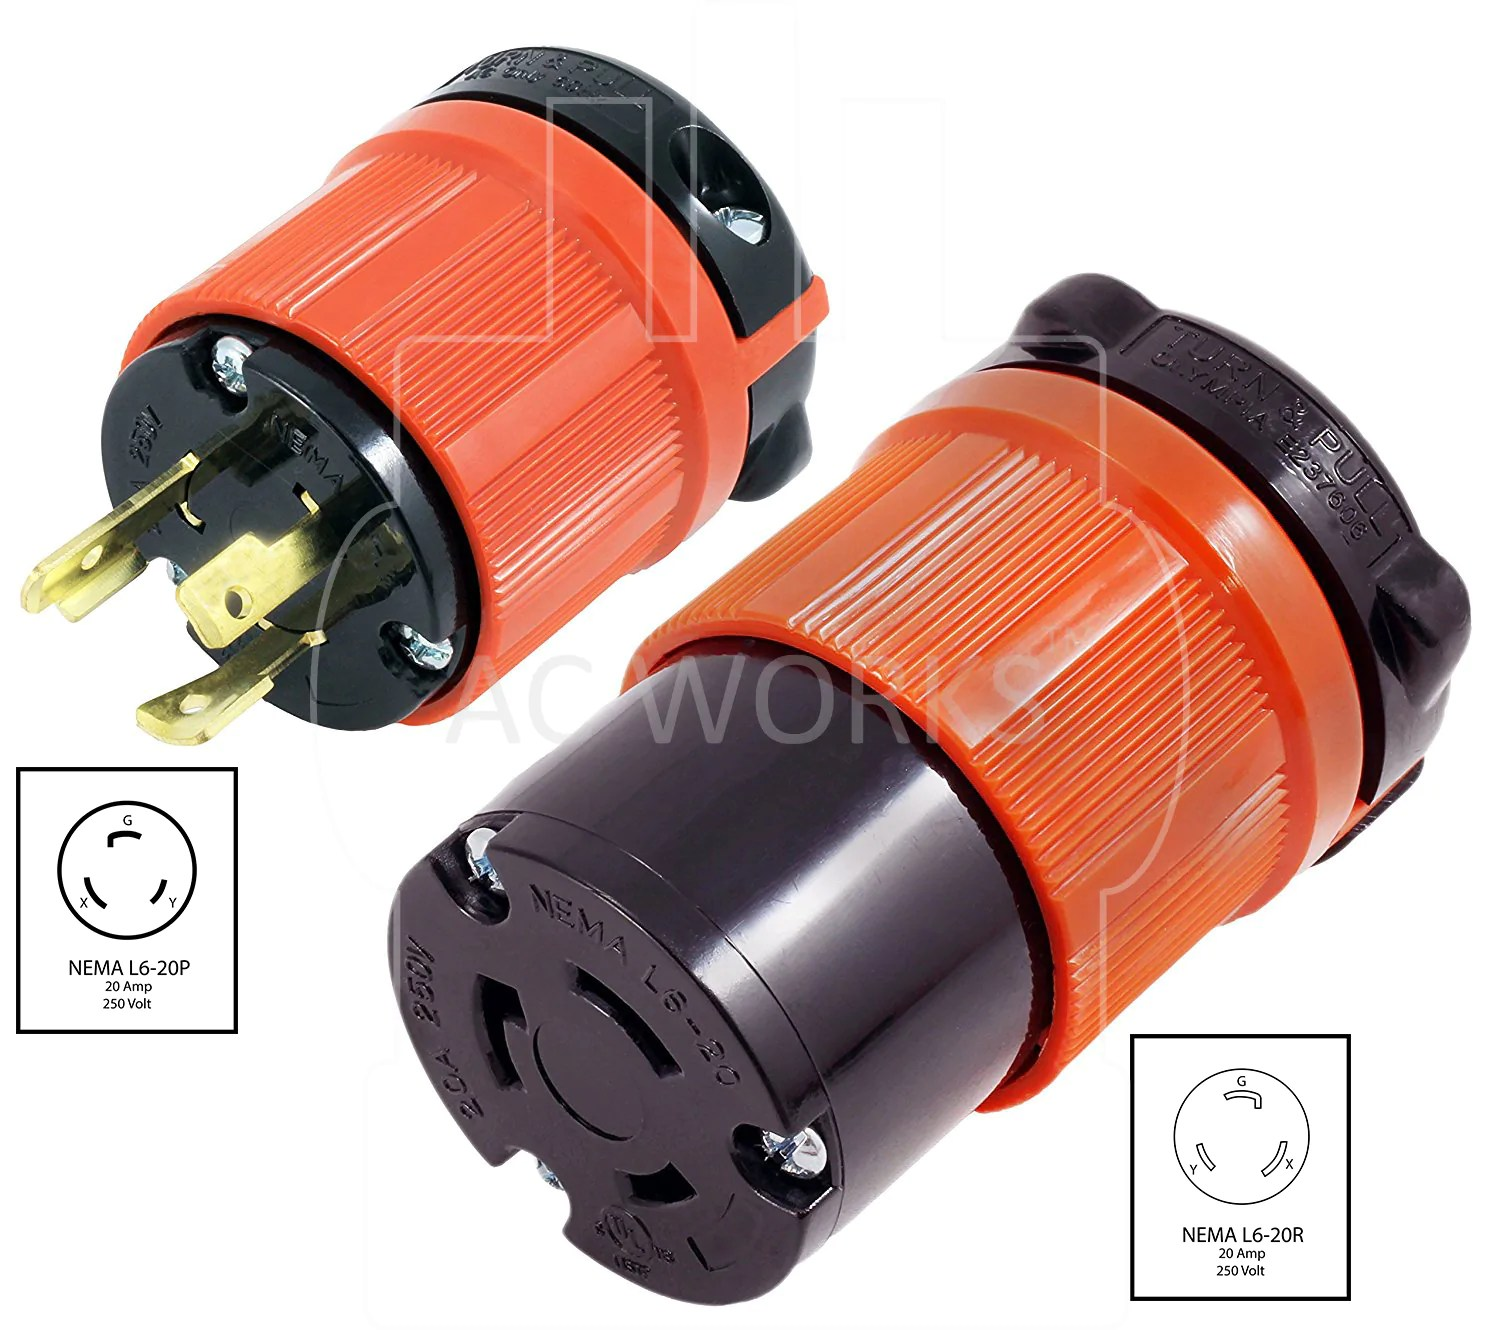 small resolution of  ac works ac connectors nema l6 20p l620p l620 3